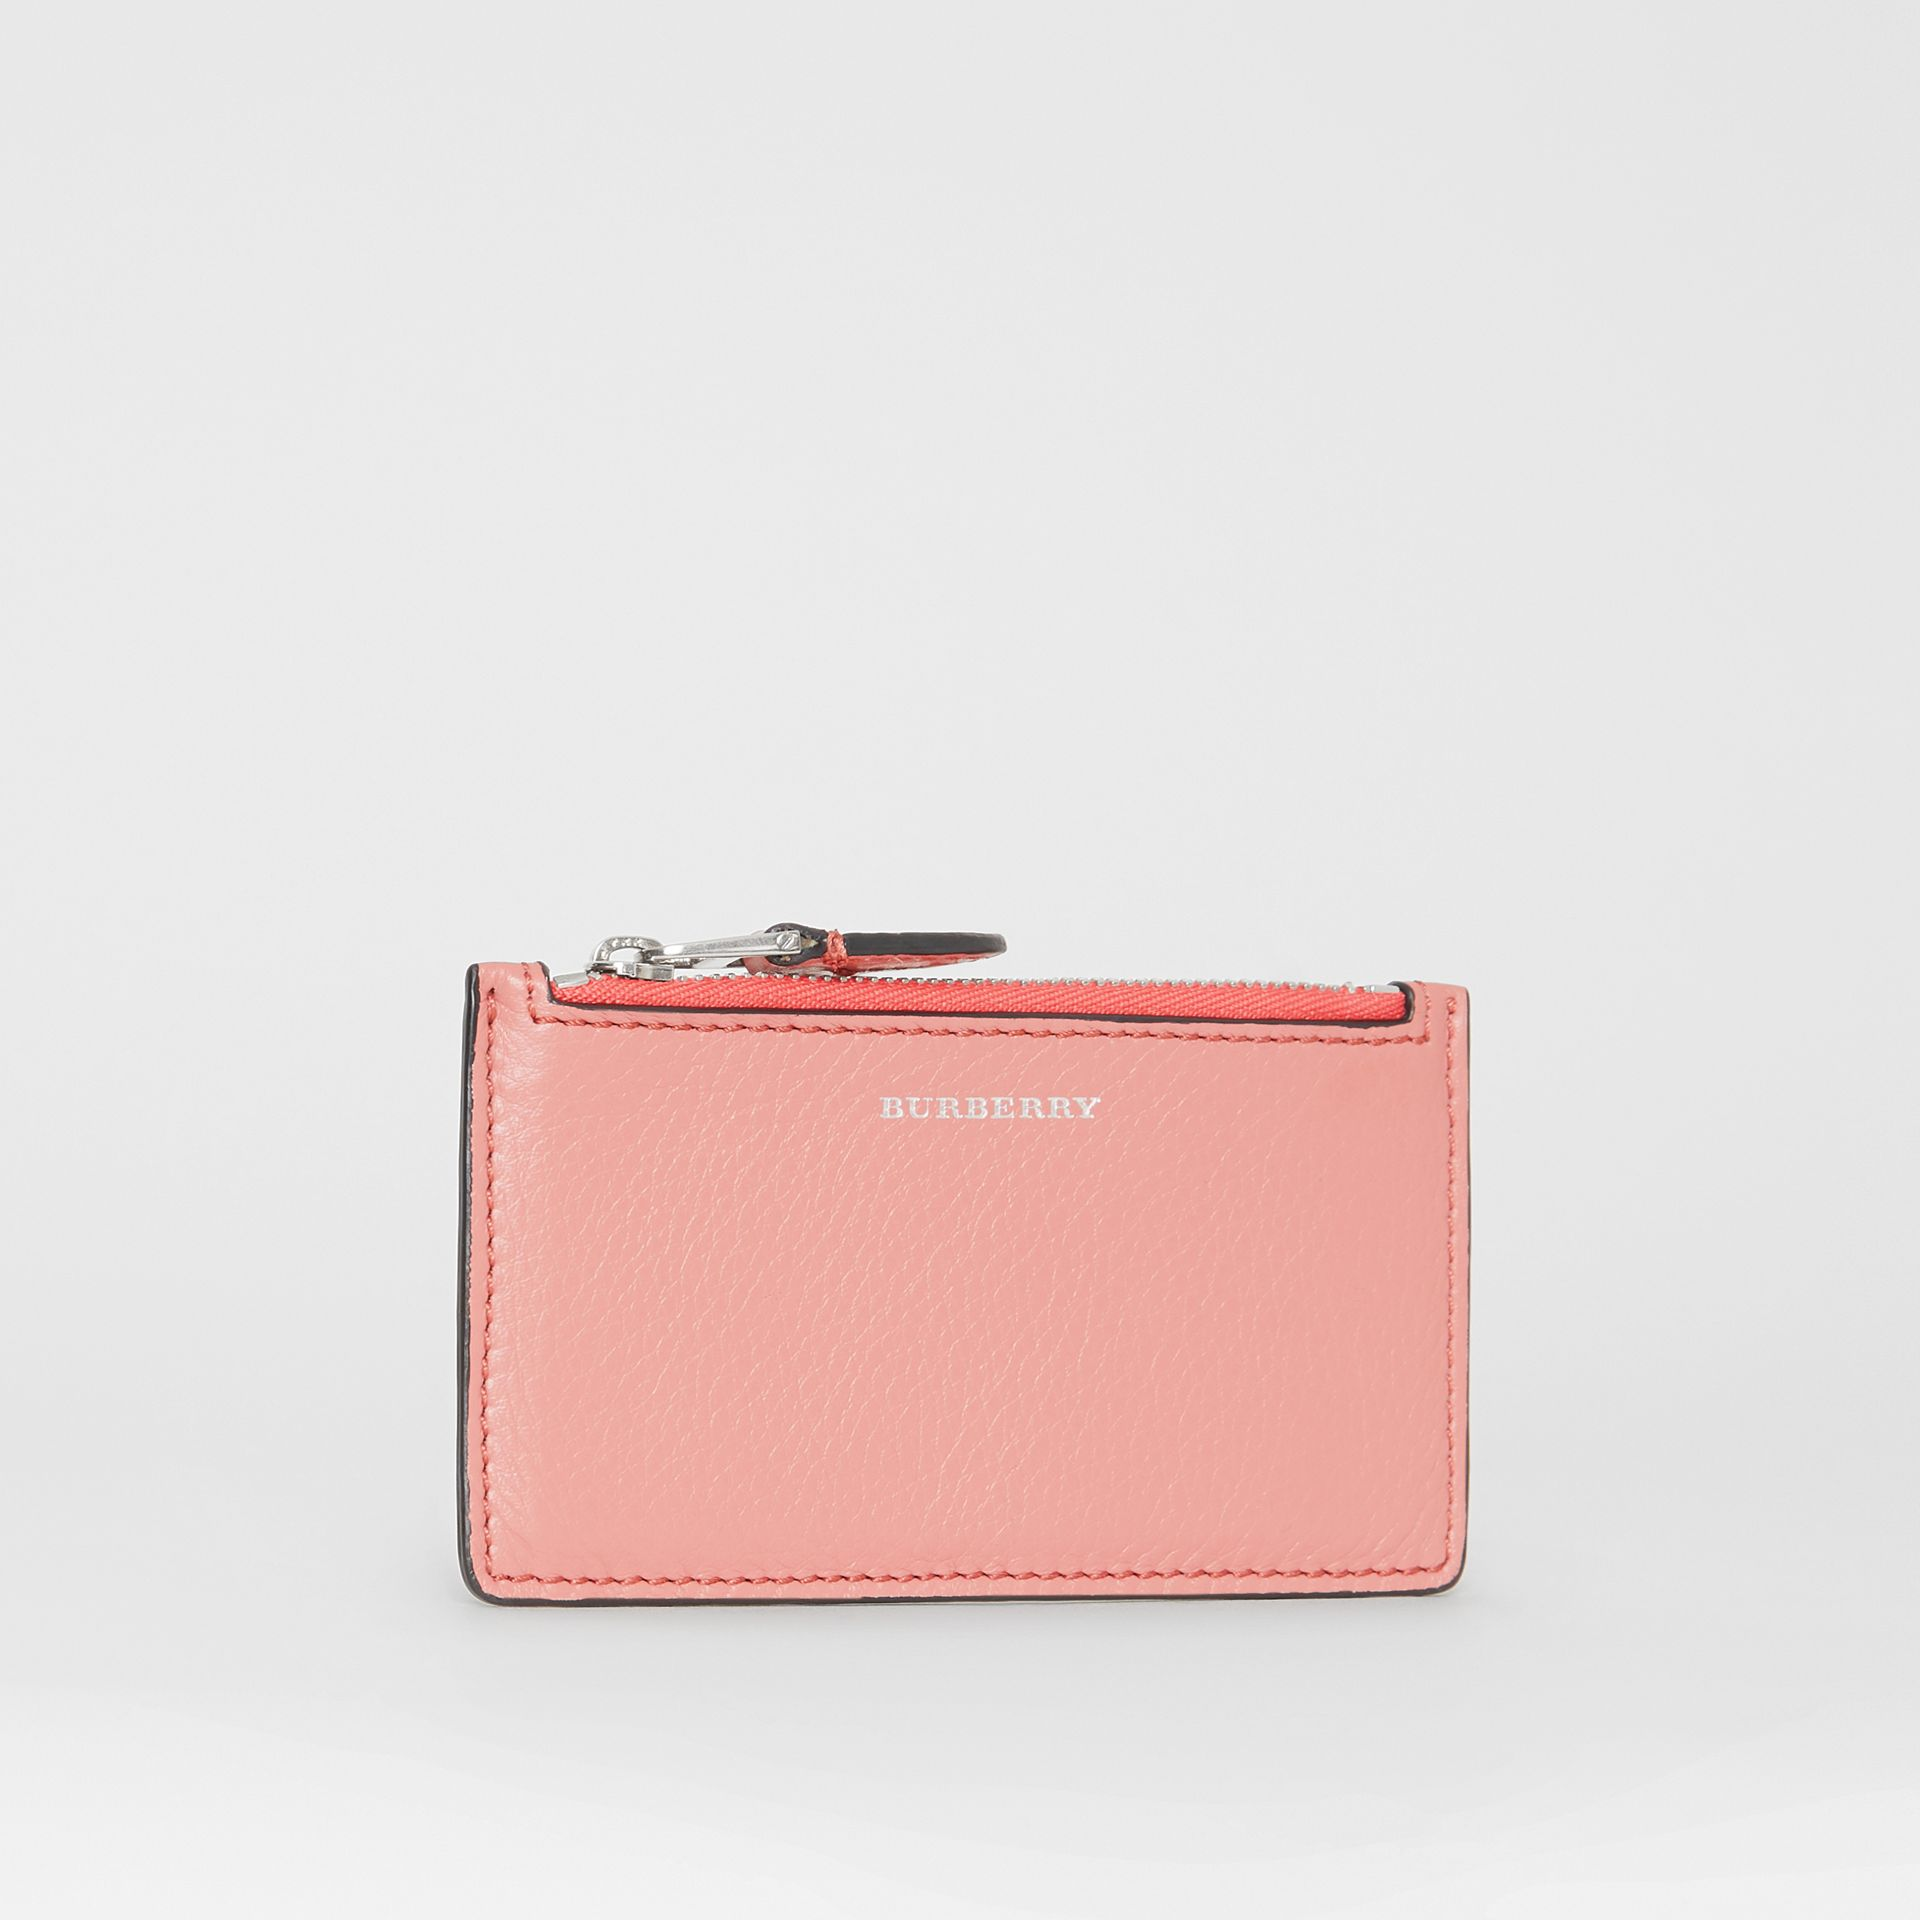 Two-tone Leather Zip Card Case in Dusty Rose - Women | Burberry Australia - gallery image 3